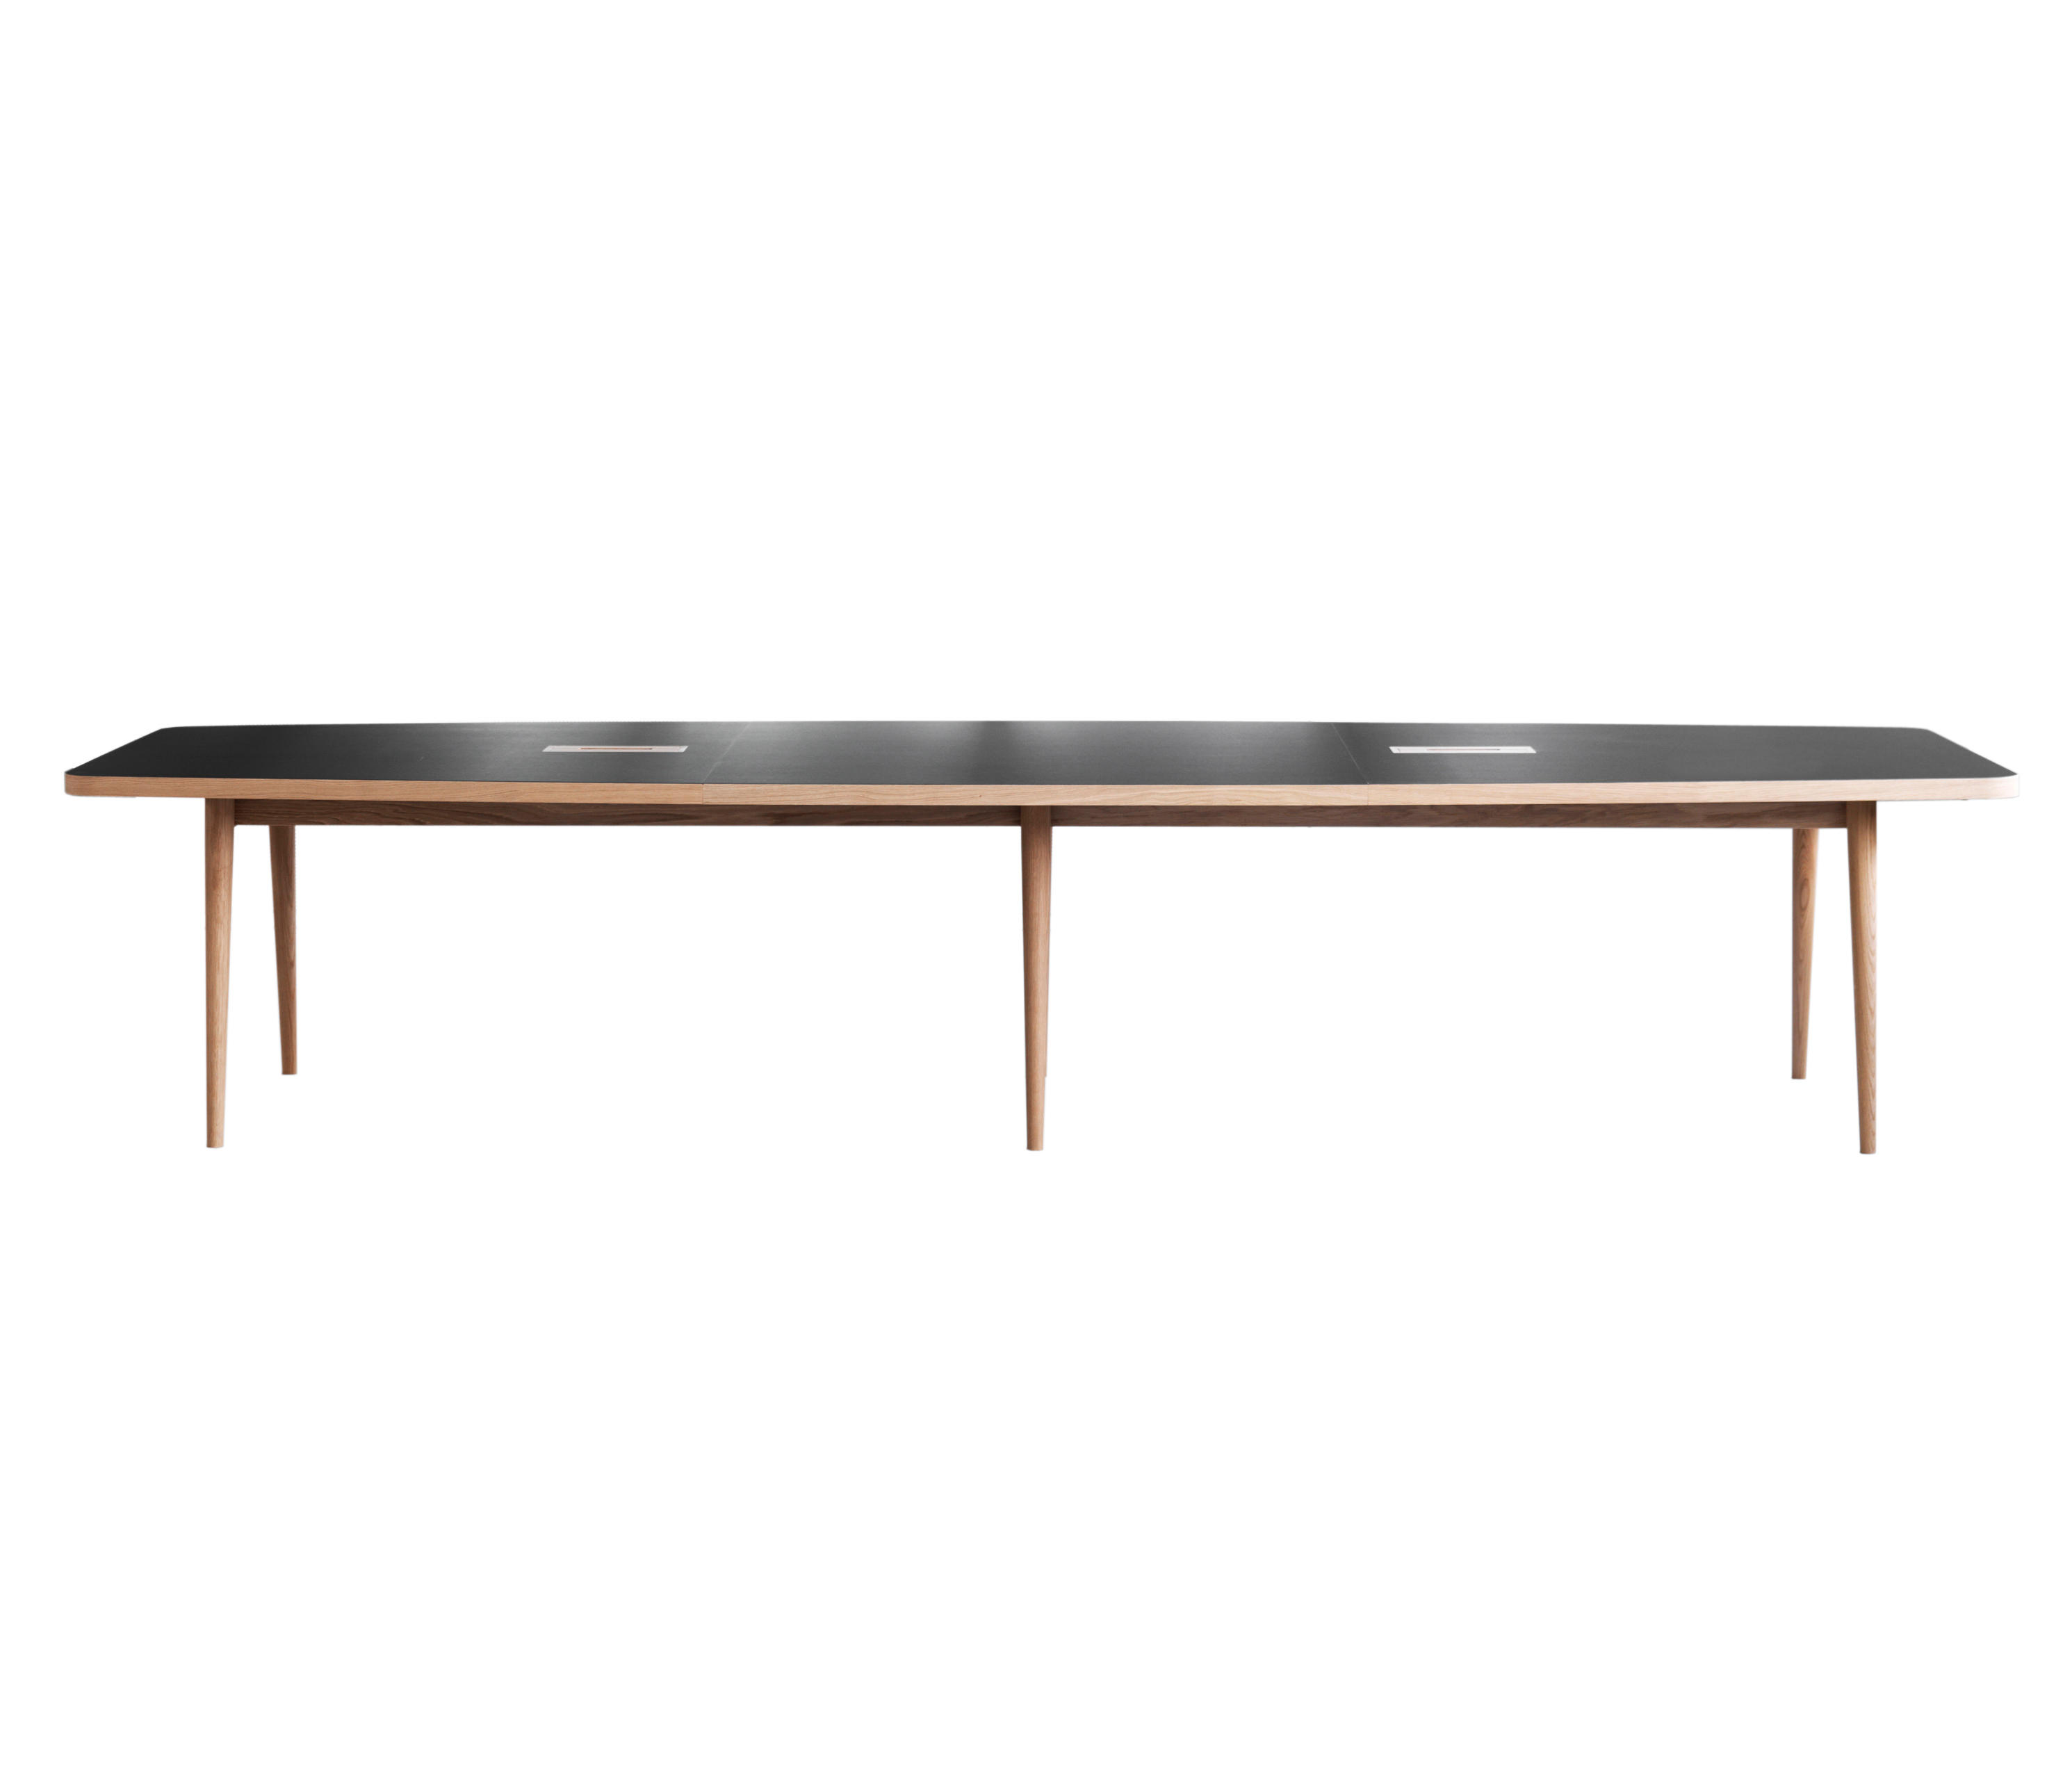 FORUM MEETING TABLE Conference Tables From Brodrene Andersen - Furniture forum